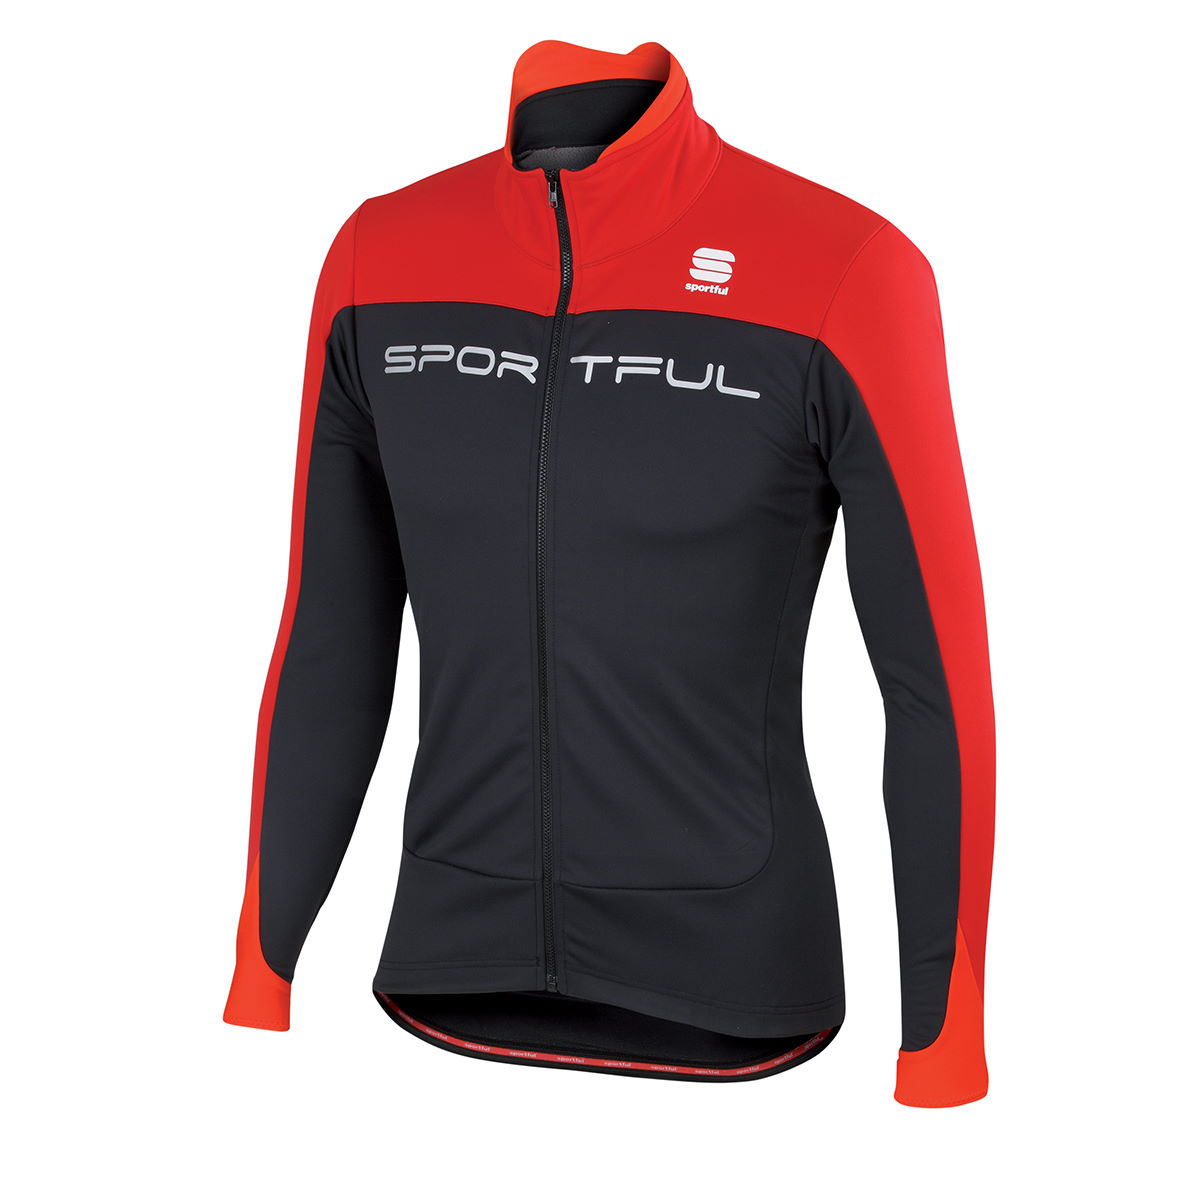 Veste Sportful Flash Softshell - XS Noir/Rouge Coupe-vents vélo